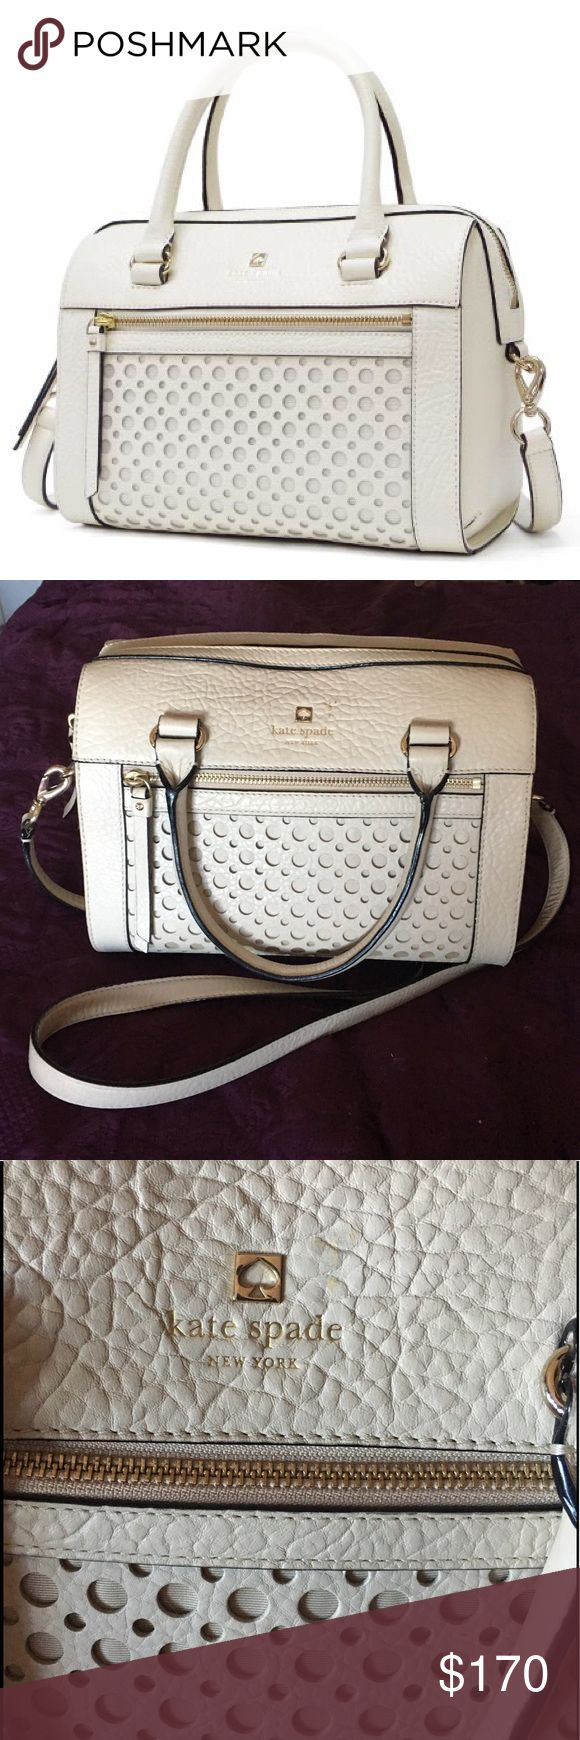 Kate Spade Perri Lane bubble Delaney shoulder bag Kate Spade Perri Lane Delaney two way shoulder bag in the color bone which is an off white color. Bubble cut out design on the front with a zipped pocket. Pebbled leather with gold tone hardware and Kate spade logo on front. There is a slight scuff mark to the right of the hardware on the front. Long straps are removable, can be worn on the shoulder or as a cross body, it also has the shorter handles so it can be worn on the forearm. Lined…